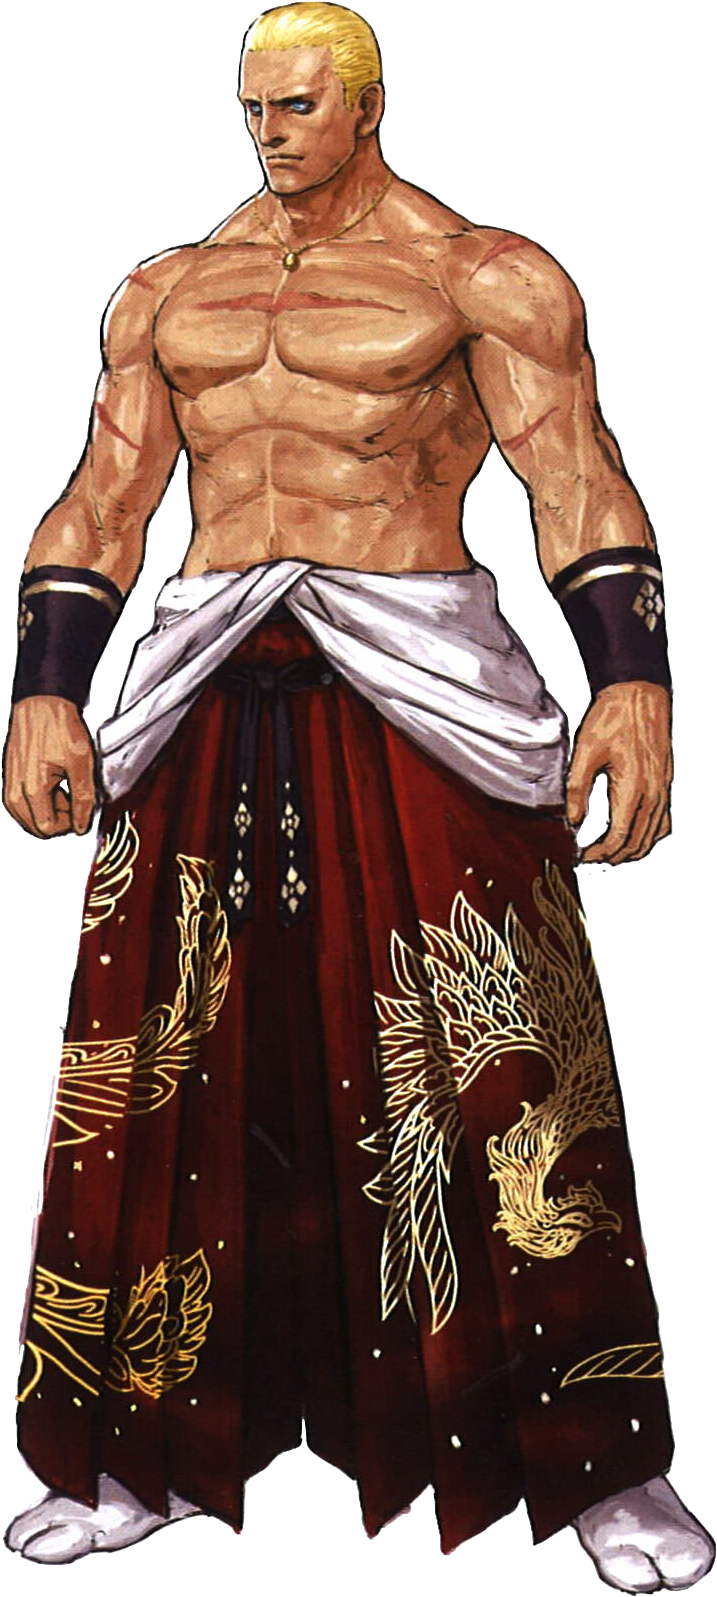 Geese Png Geese Kofxiv Terry Bogard And Rock Howard 3532226 Vippng Zerochan has 42 rock howard anime images, wallpapers, fanart, and many more in its gallery. geese png geese kofxiv terry